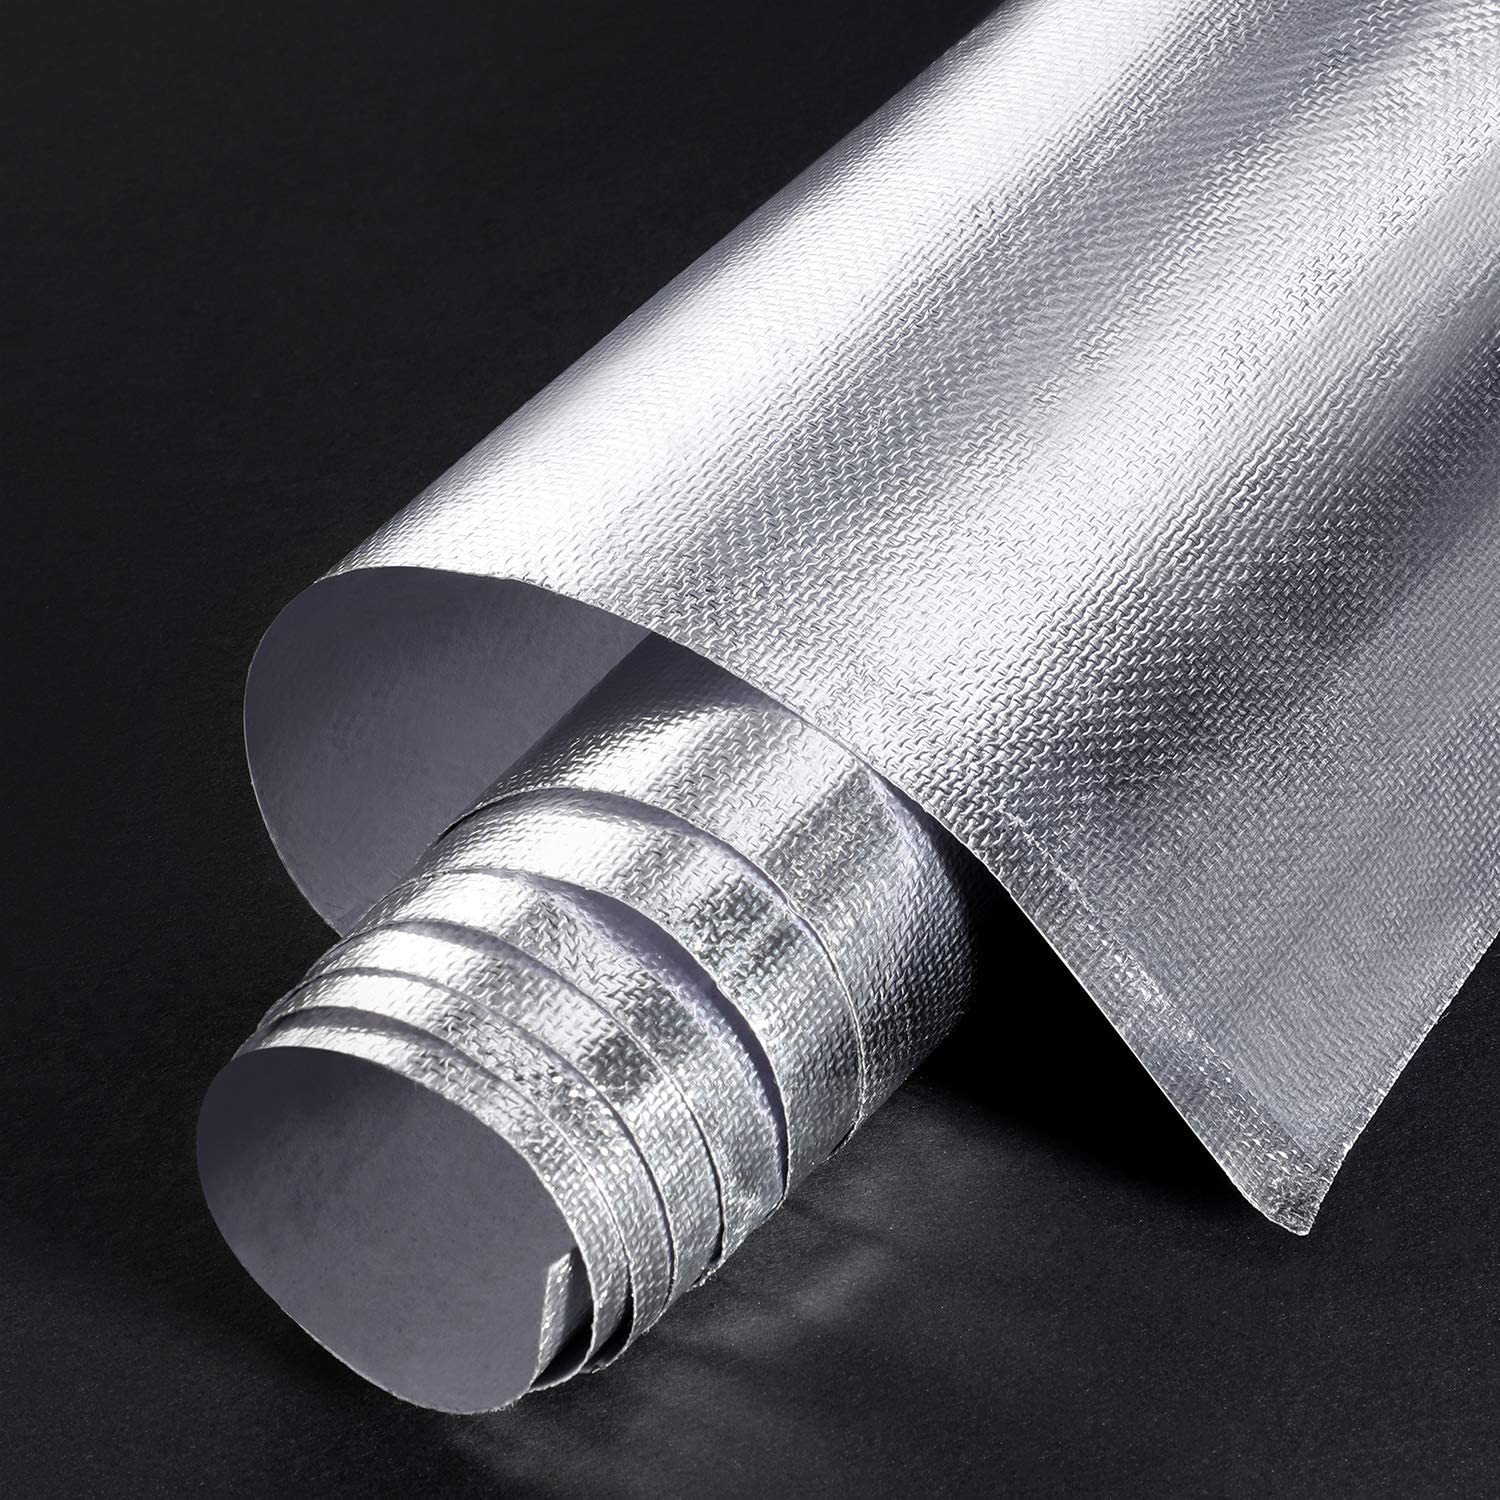 Adhesive Backed Aluminized Fiberglass Sheet Practical Heat Shield Protection Barrier Cover Aluminized Heat Shielding Mat for Hose and Auto Use (Silver, 36 x 48 Inch)